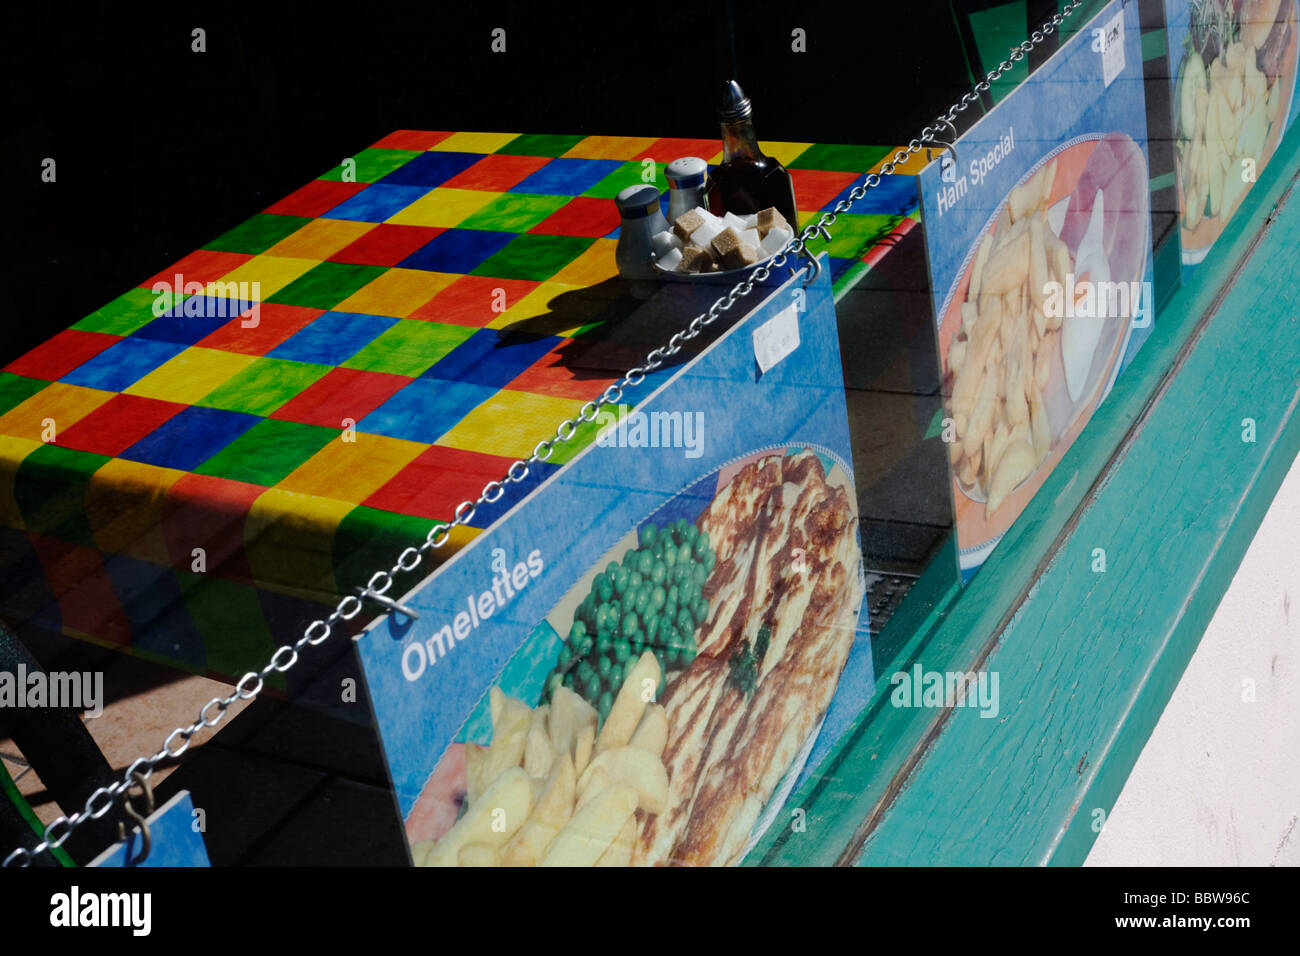 Brightly-coloured chequered table cloth and menu   in a seaside cafe window in Weston-super-Mare - Stock Image